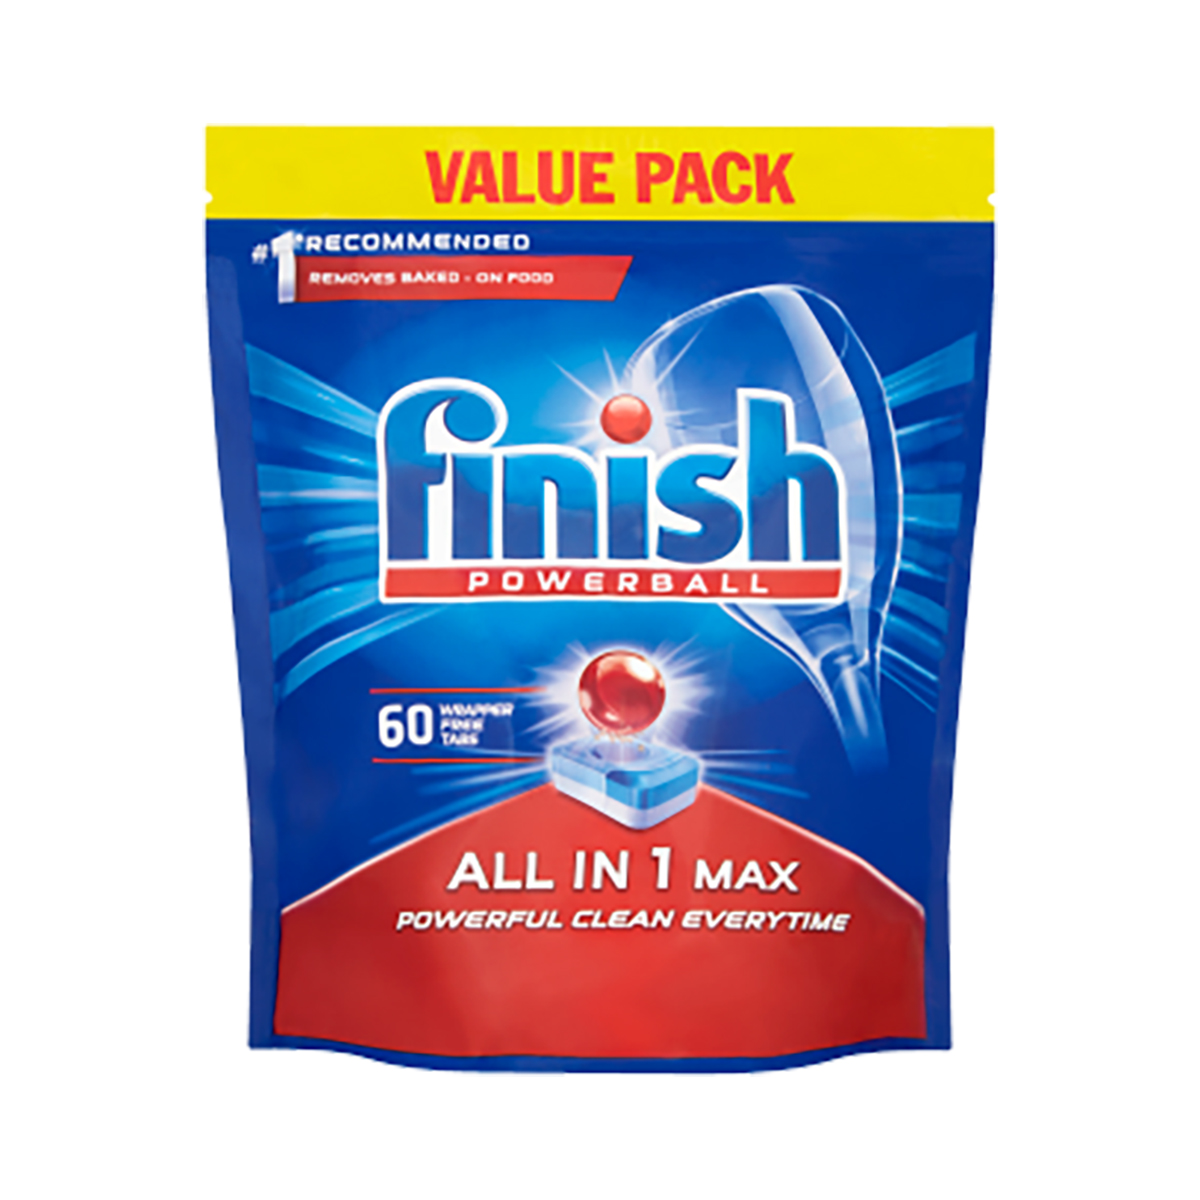 Dishwashing products Finish Dishwasher Powerball Tablets All-in-1 Ref RB797730 Pack 60